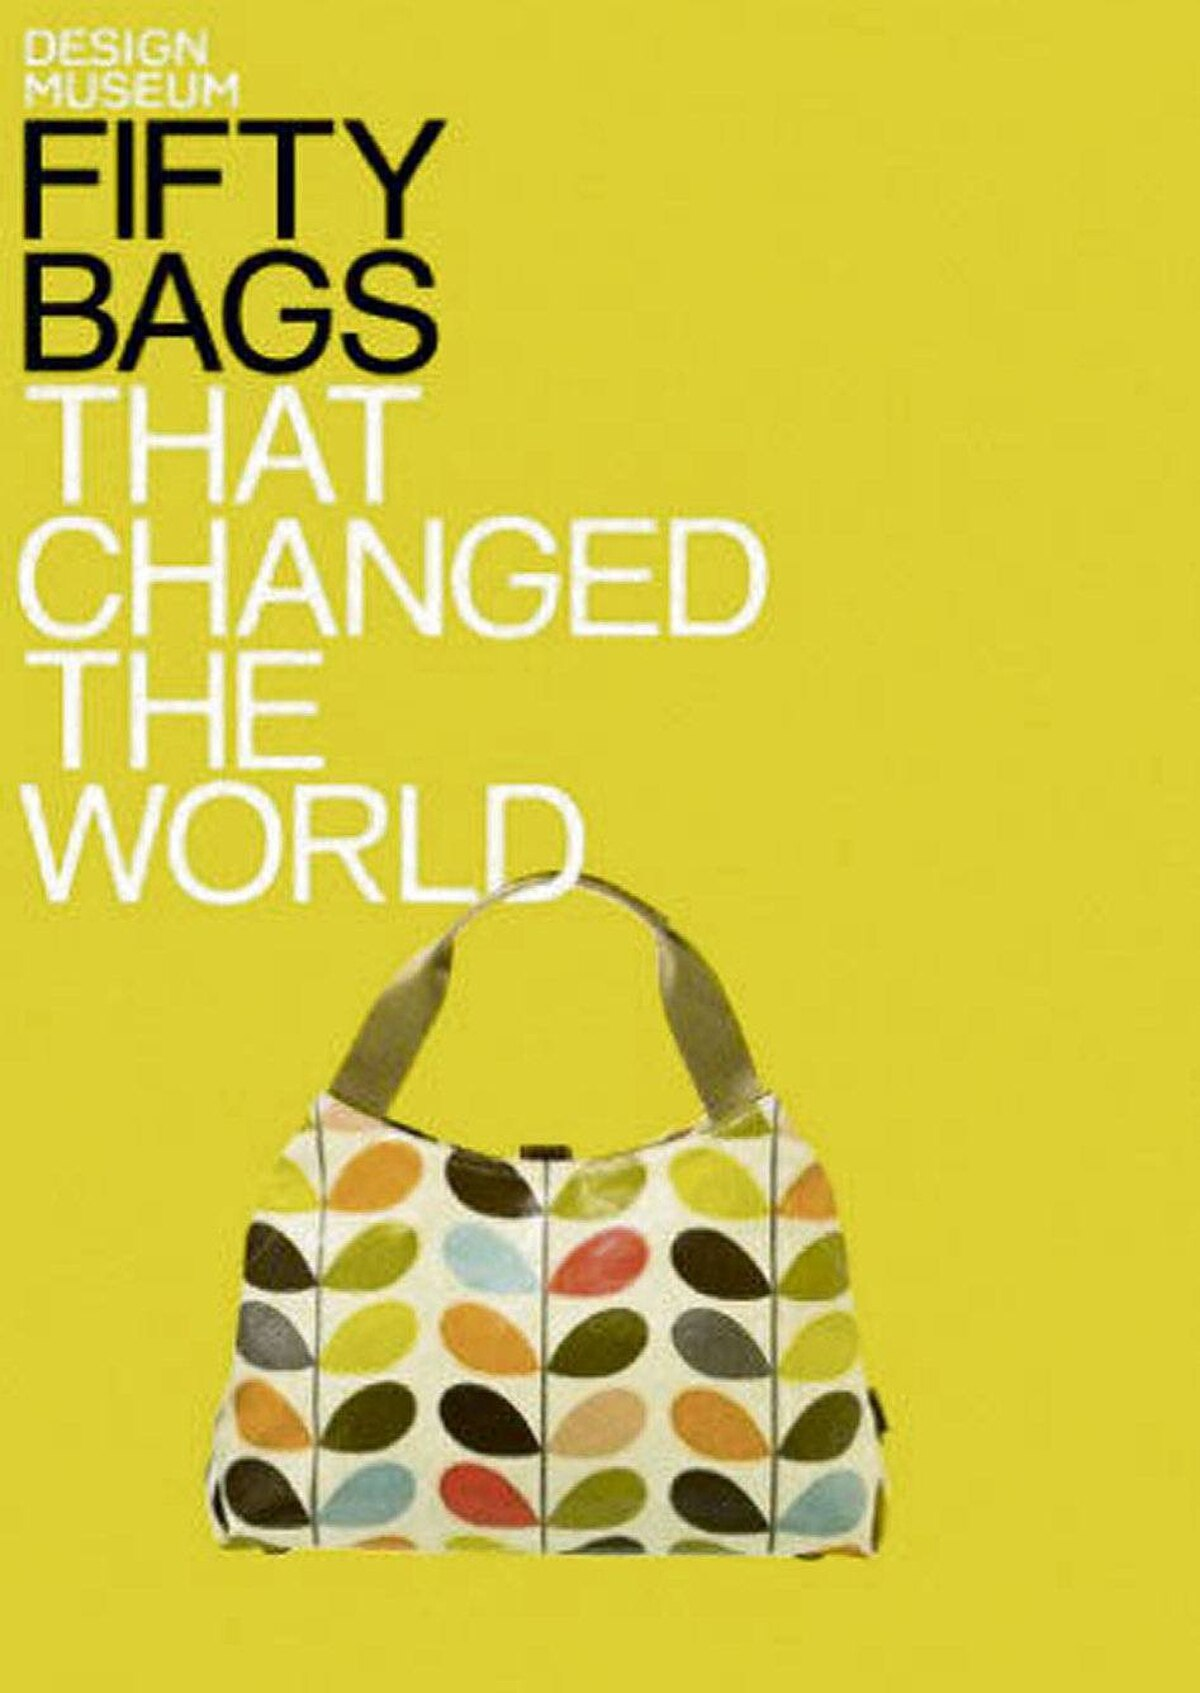 The Design Museum's Fifty Bags That Changed The World $26 at Chapters/Indigo (www.chapters.indigo.ca)